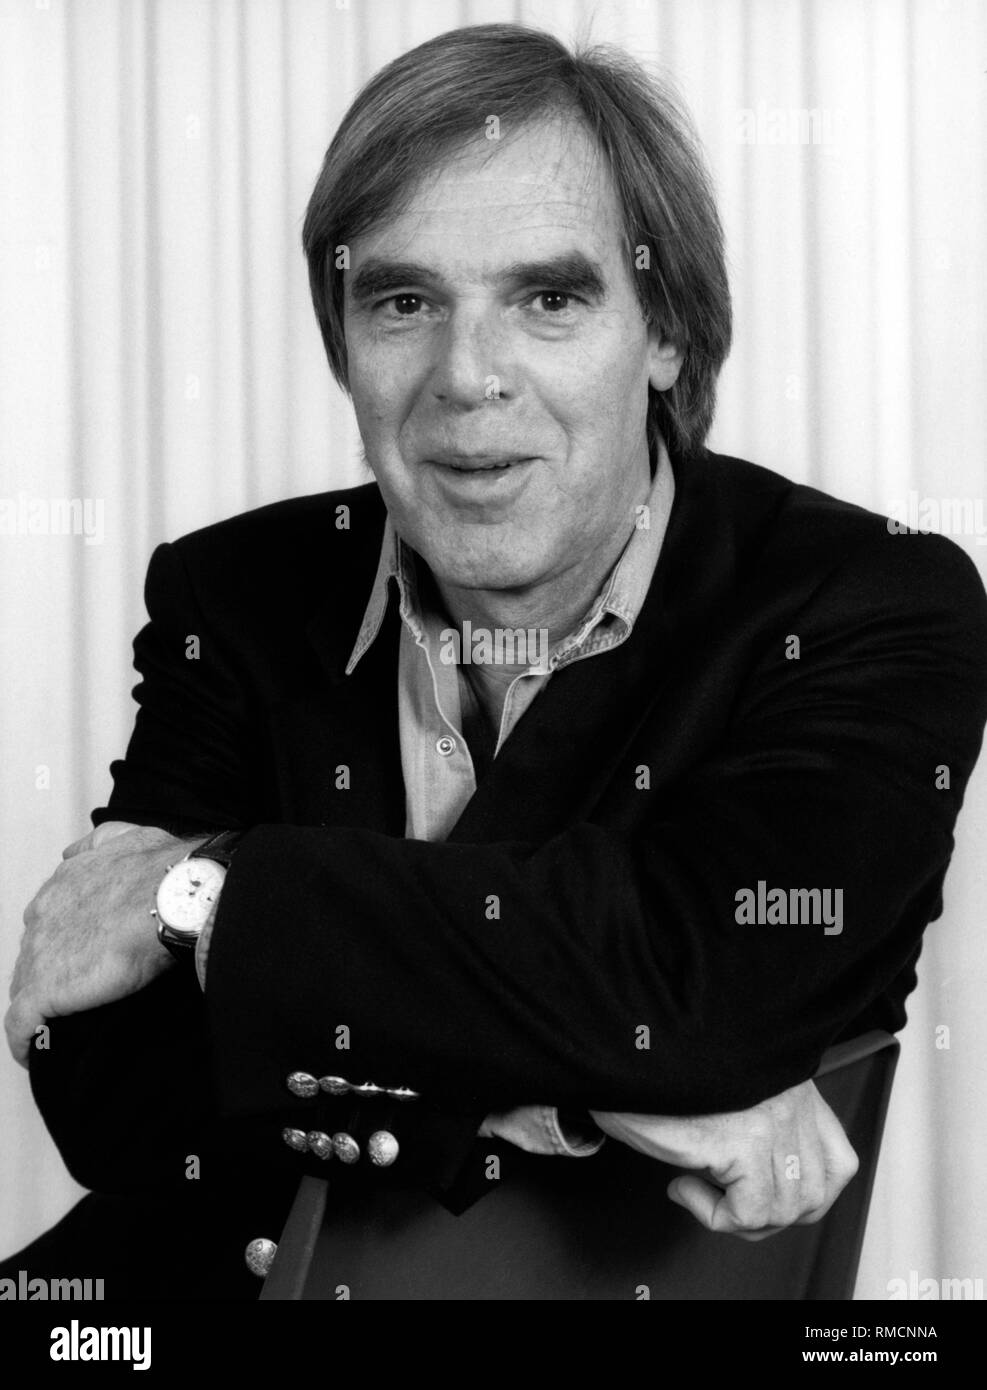 Portrait of the actor, director and author Horst Juessen. Undated photo, probably at the beginning of the 1990s. - Stock Image